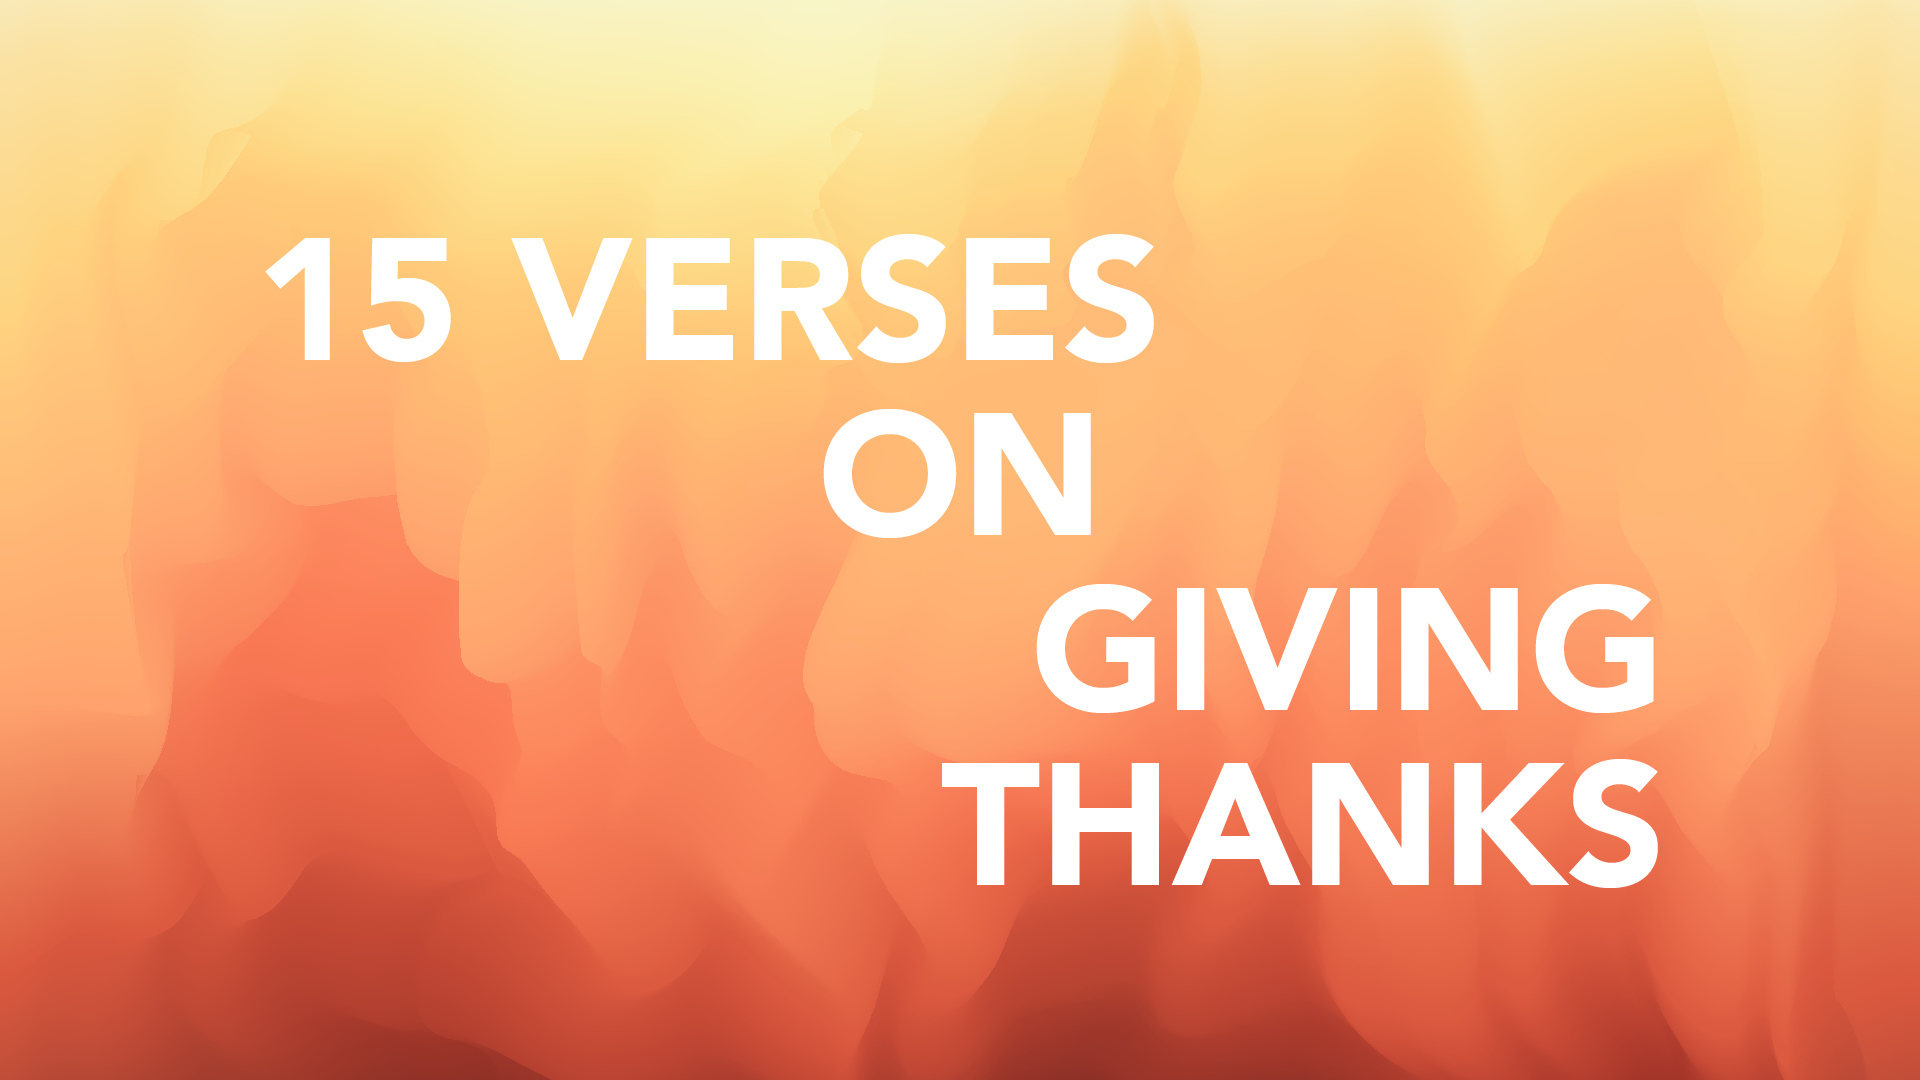 Giving Thanks: 15 Verses to Help Hero Image